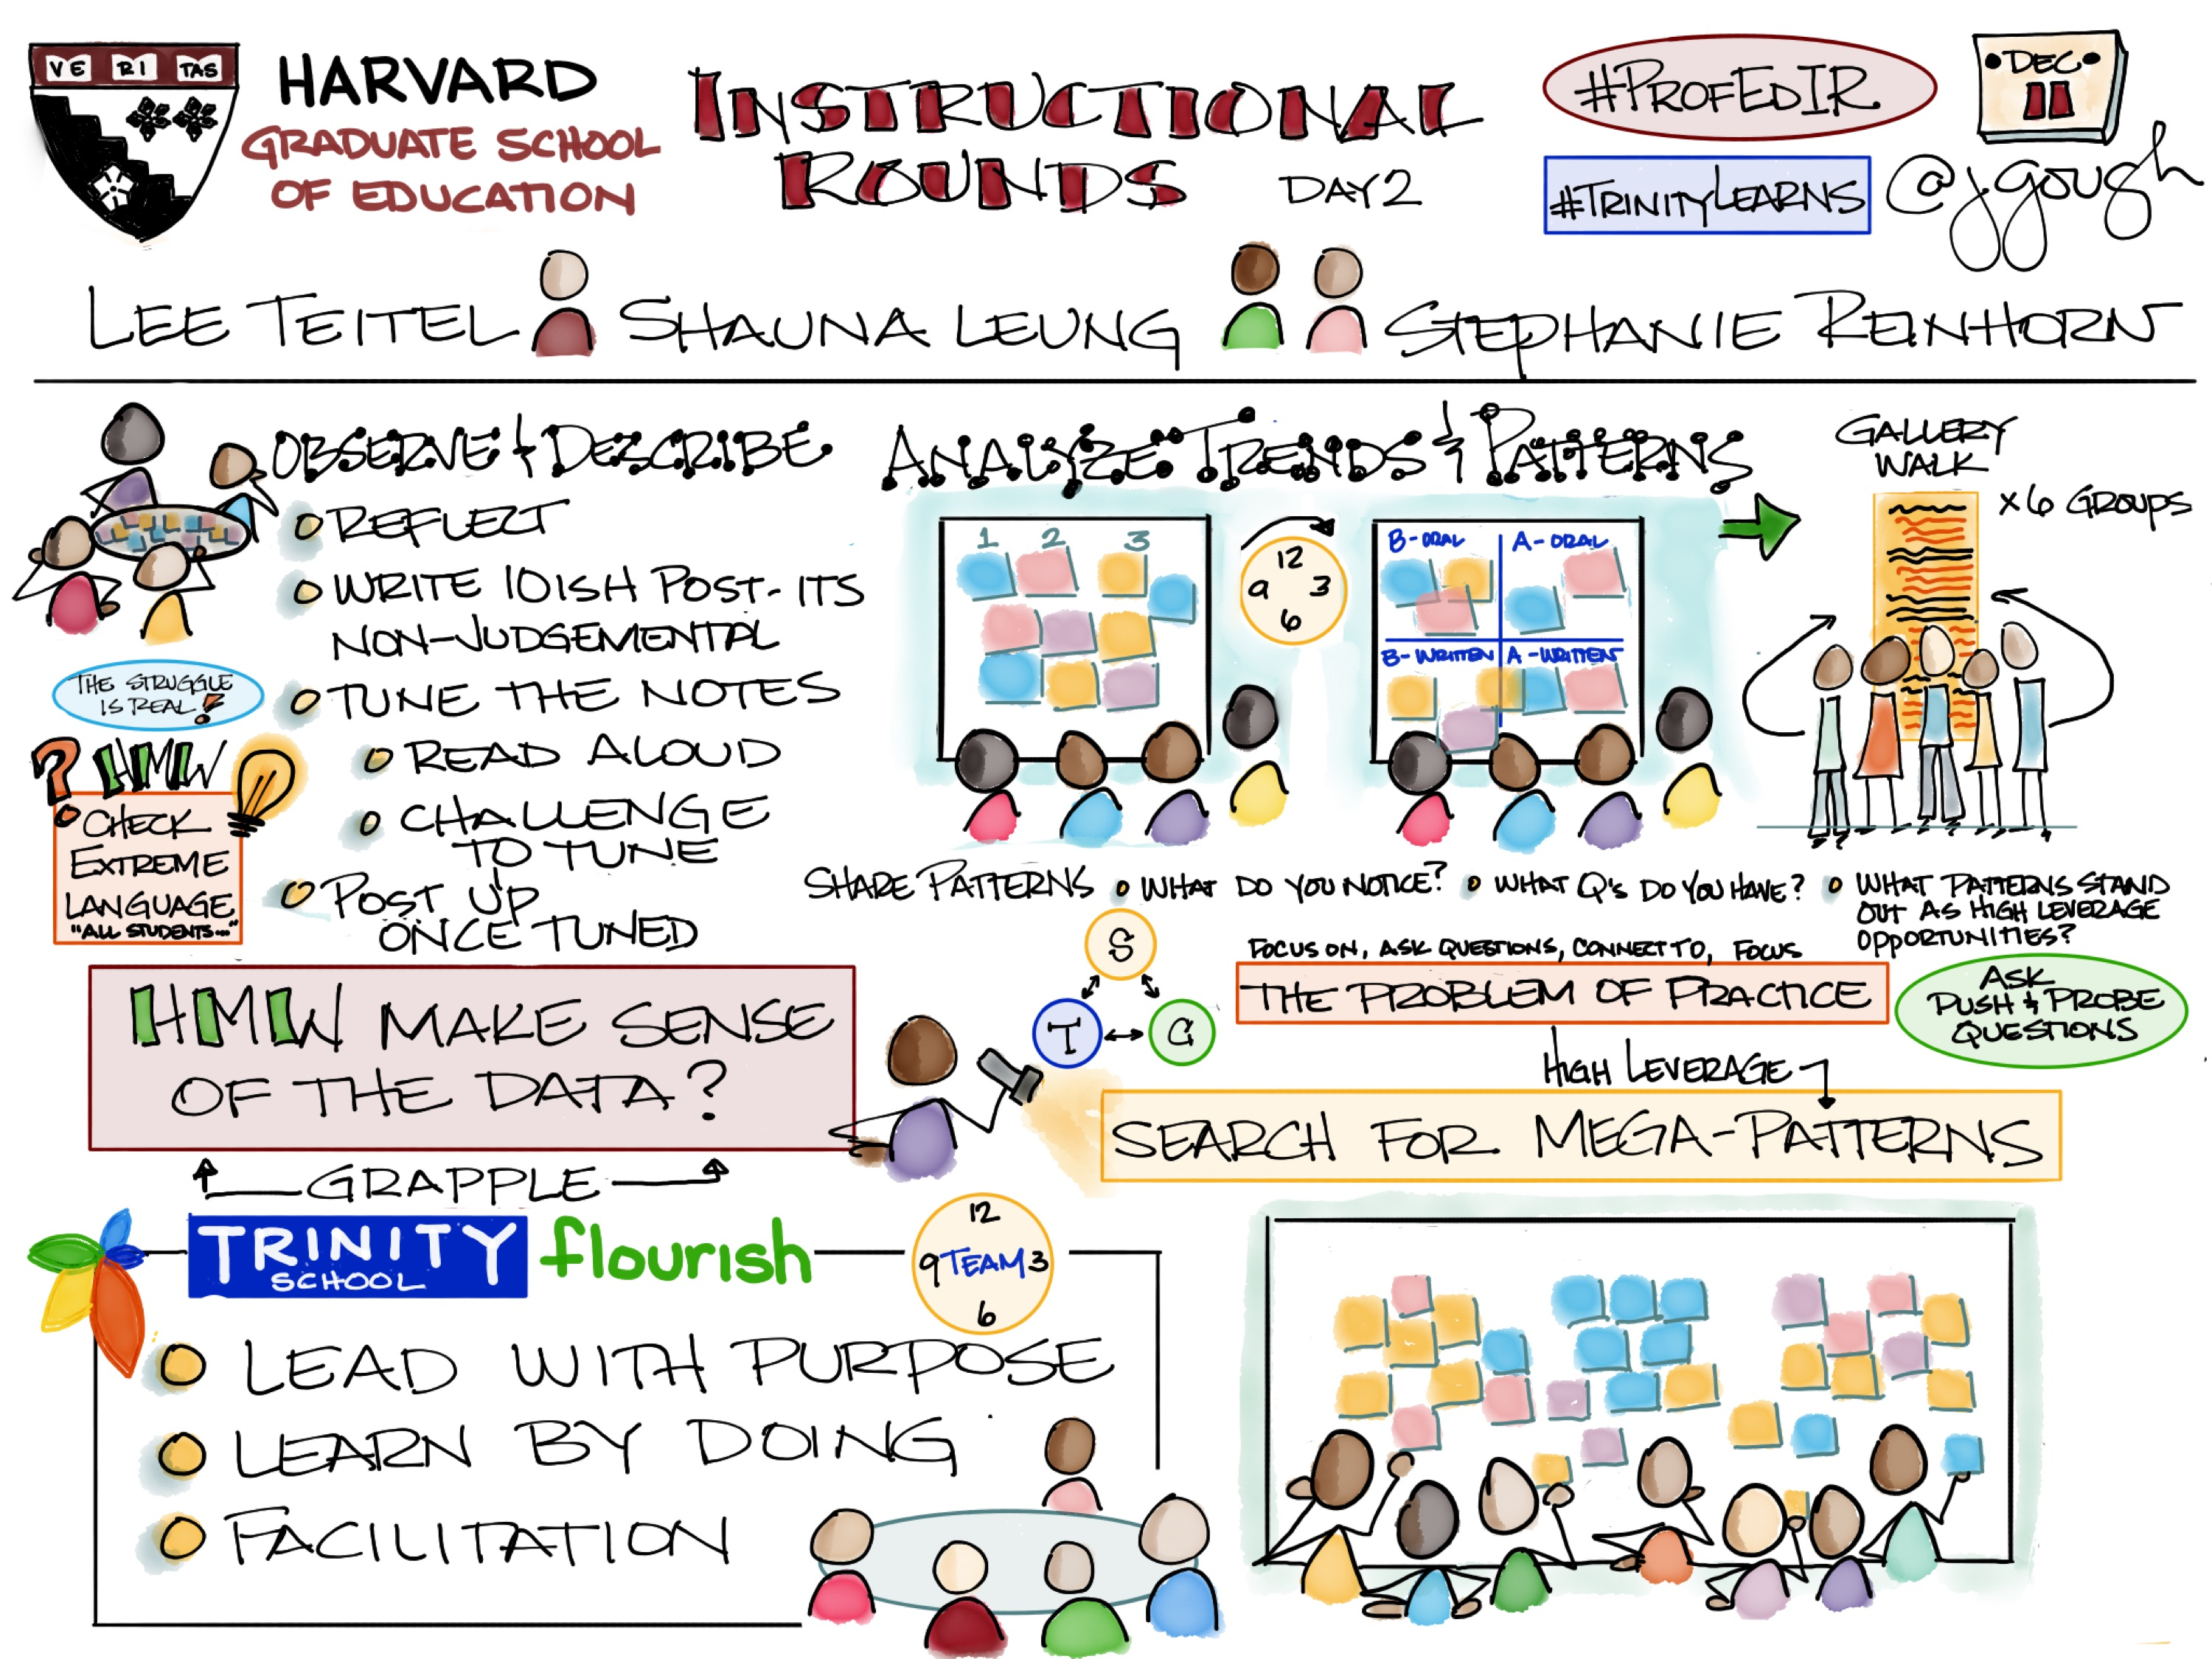 Sharing my Day 2 #Sketchnotes from @HGSE #ProfEdIR Instructional Rounds – School Visit 1 #TrinityLearns